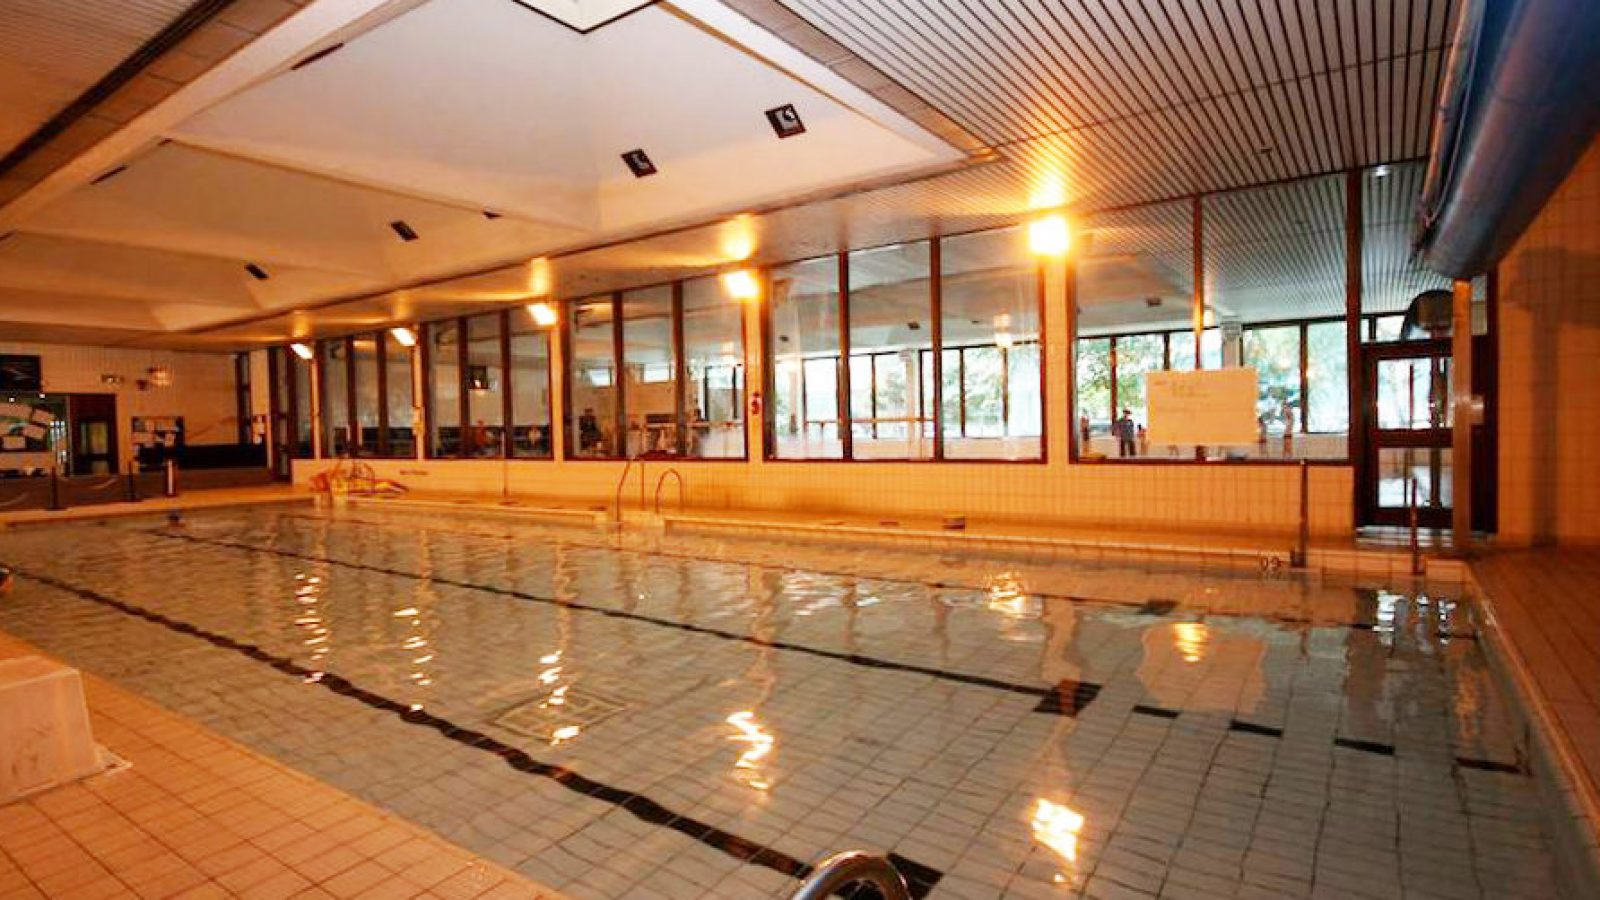 One of the pools used by school children at Altrincham Leisure Centre